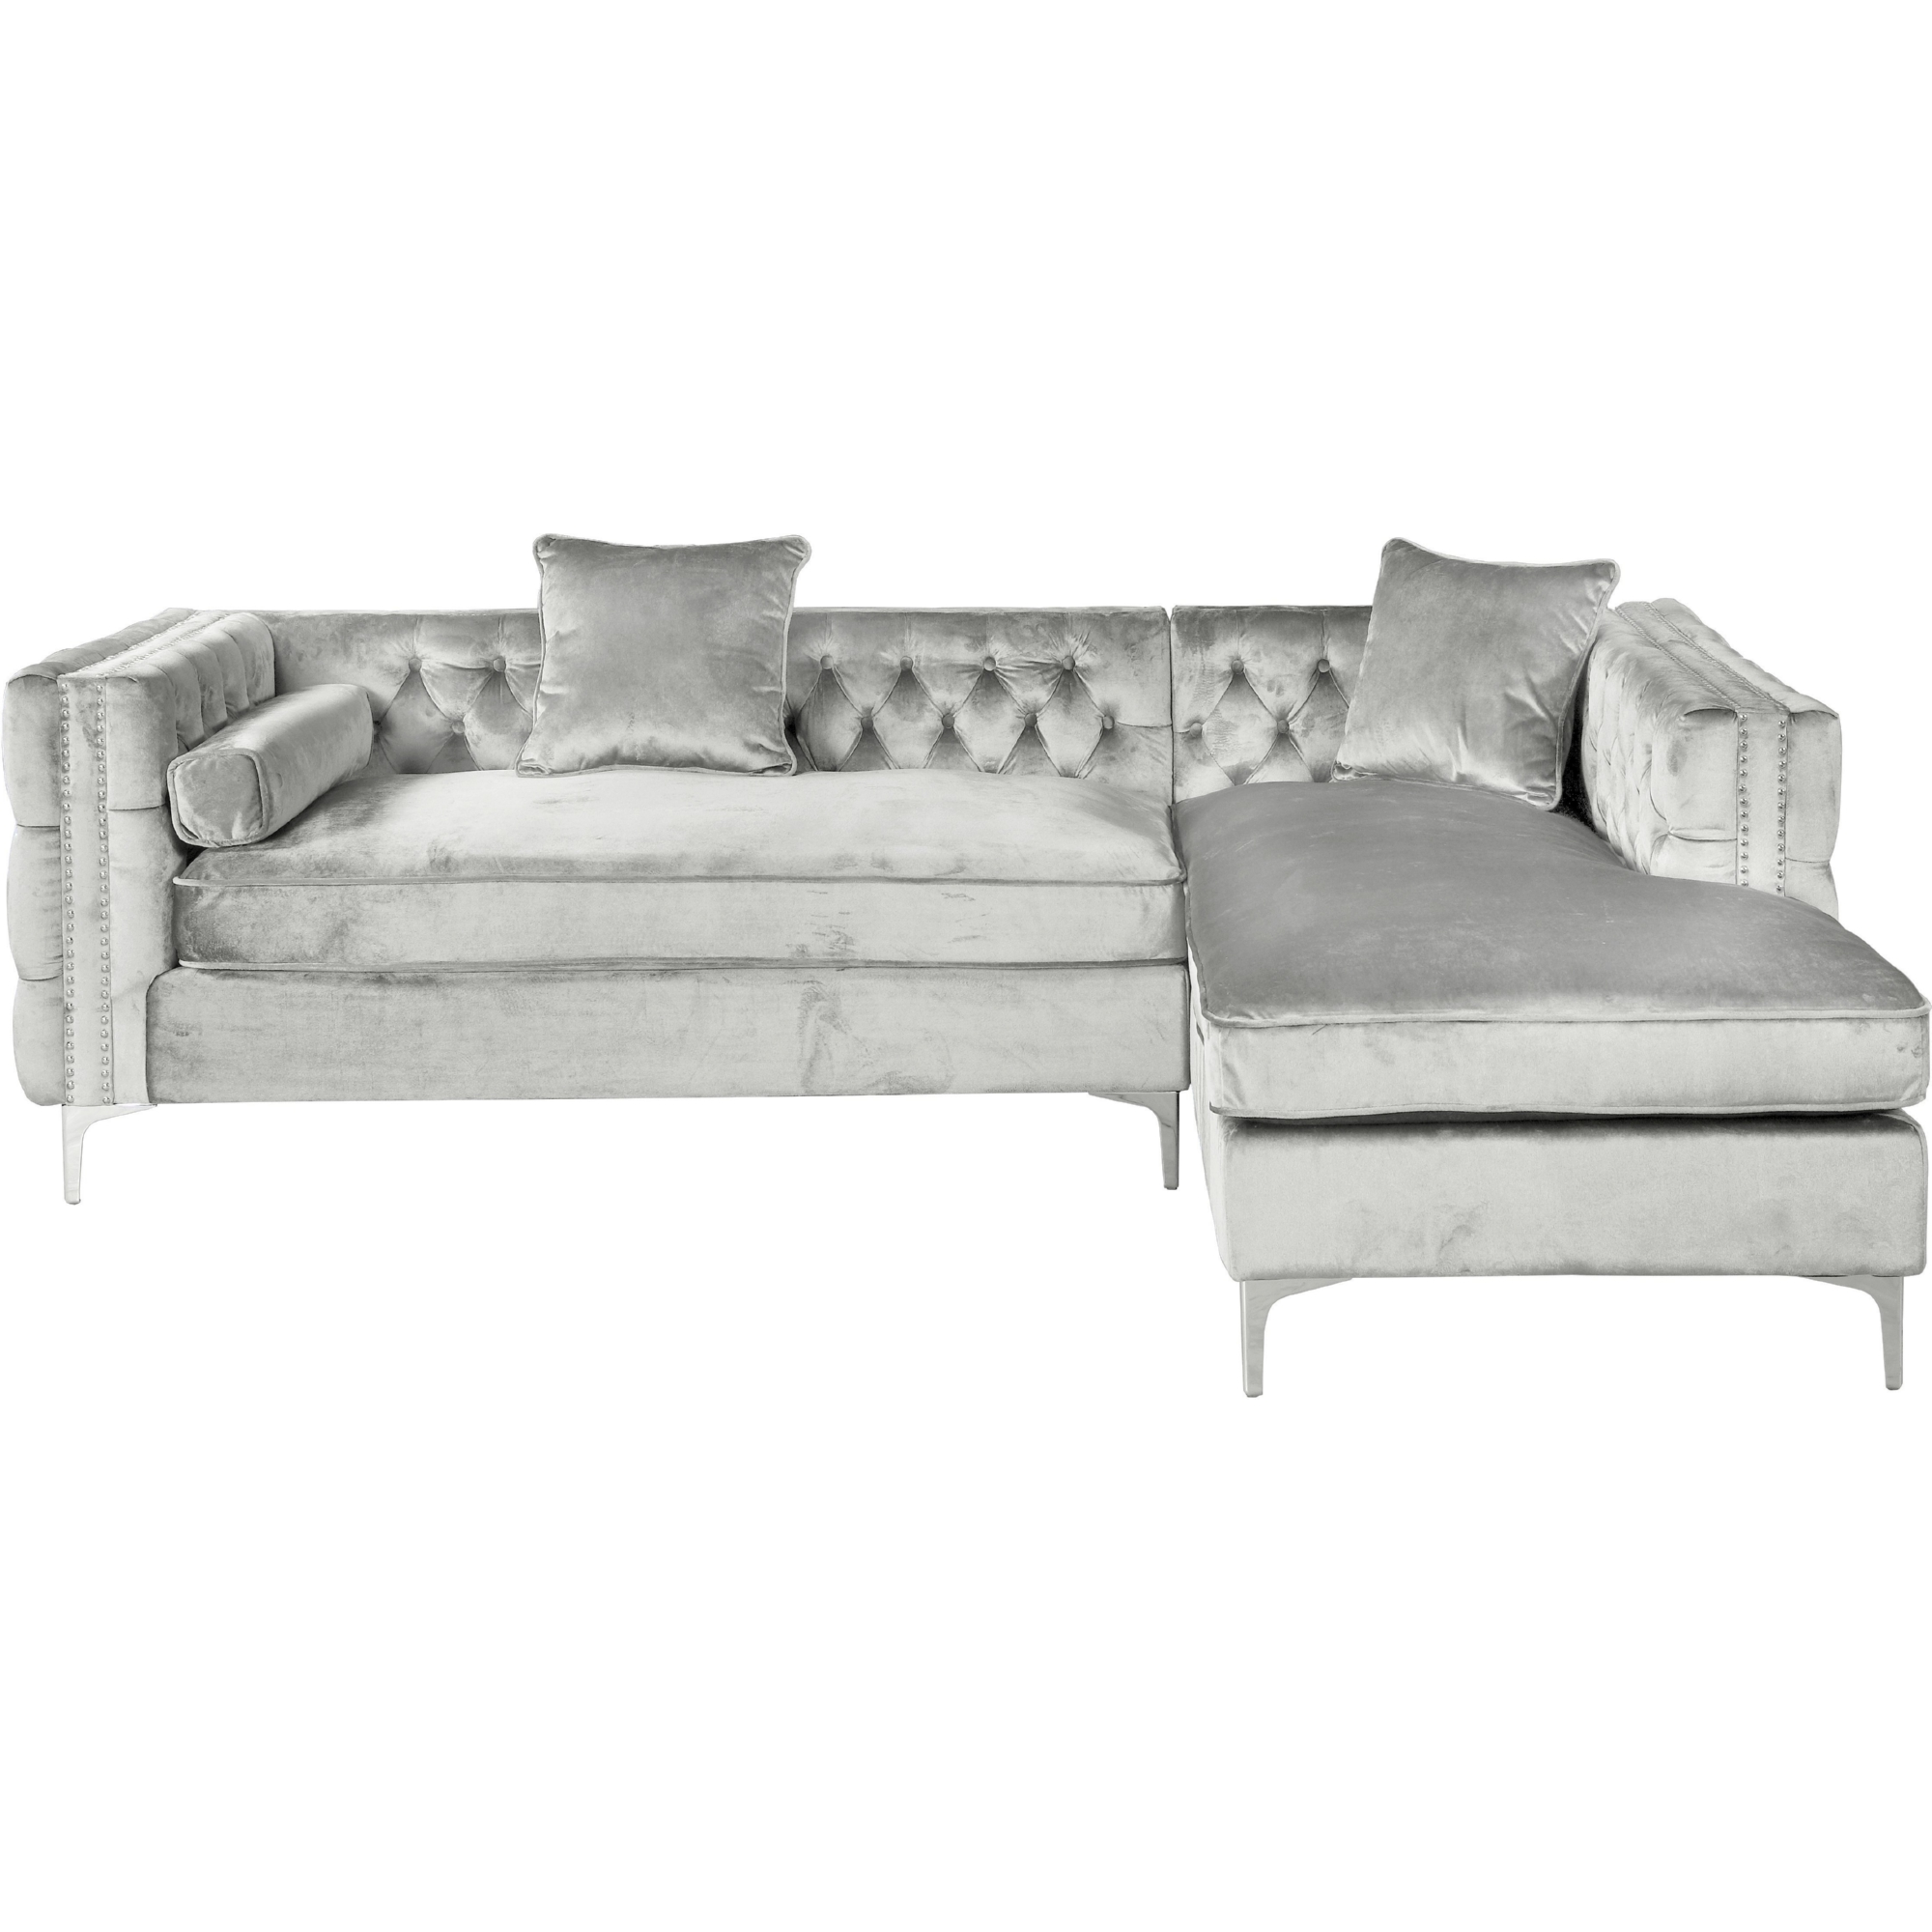 Wondrous Da Vinci Sectional Sofa W Right Chaise In Tufted Silver Velvet W Nailhead Trim On Metal Leg By Chic Home Beatyapartments Chair Design Images Beatyapartmentscom